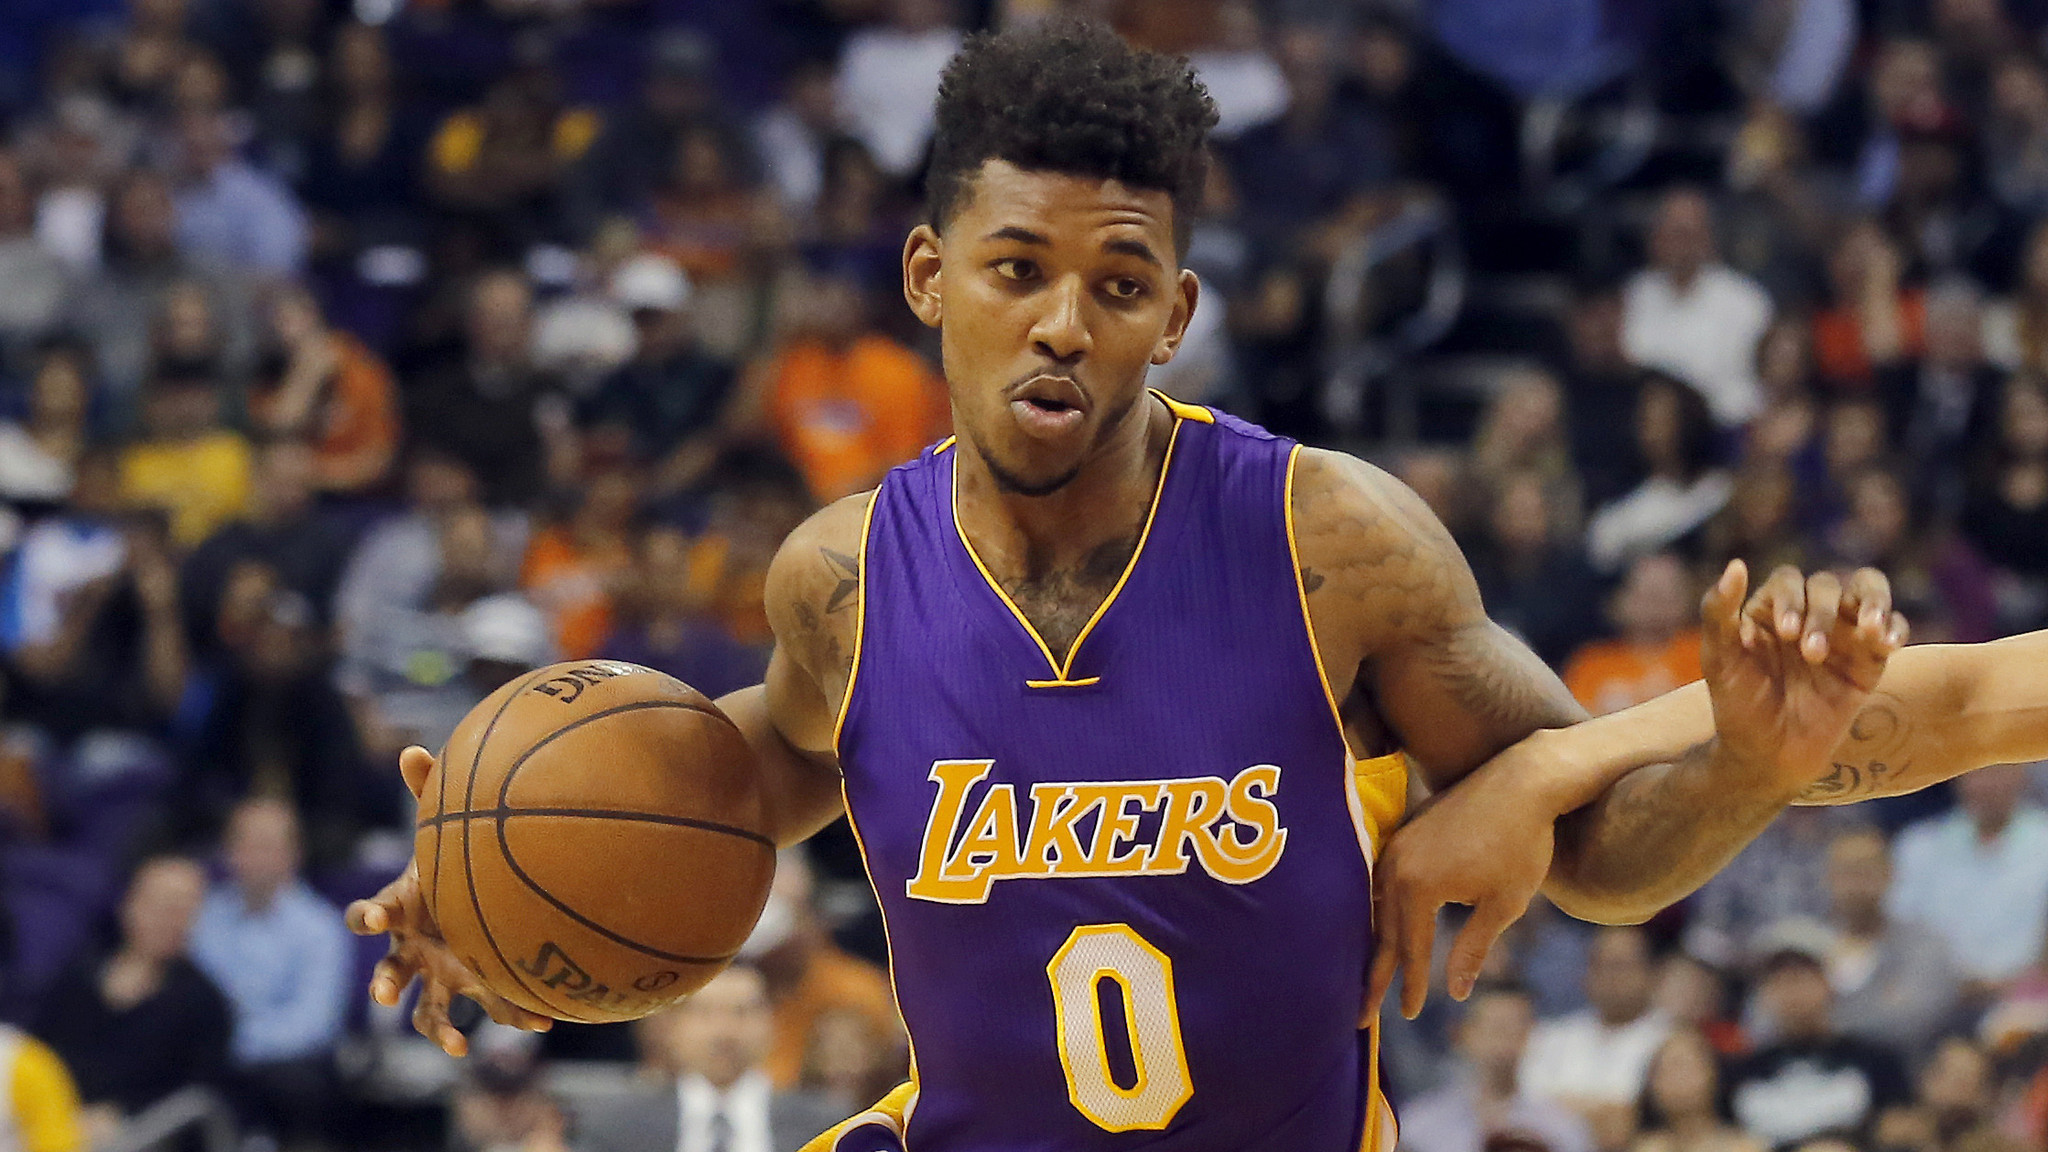 Lakers' Byron Scott eager to see how Nick Young handles slump – LA Times